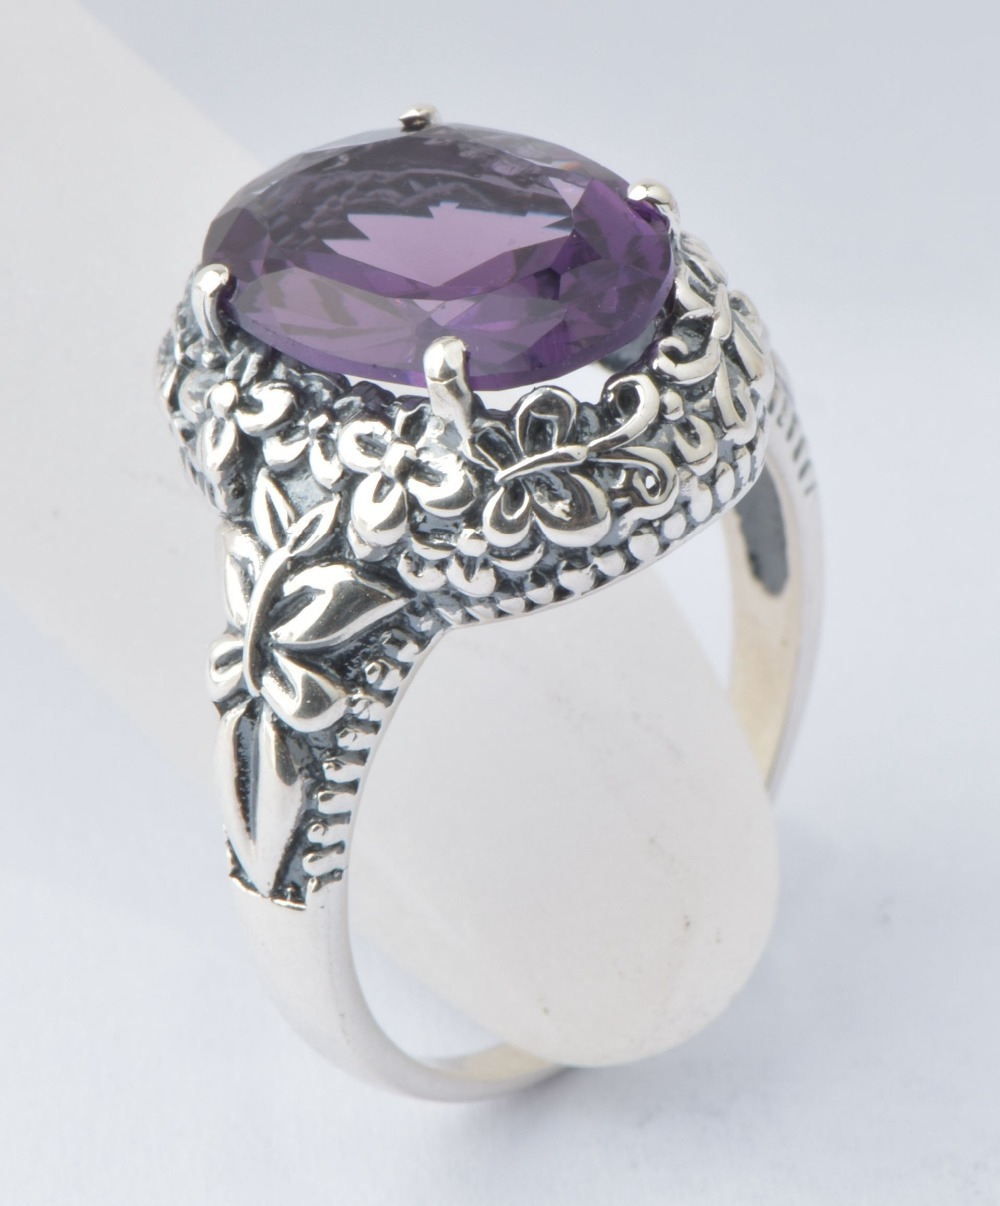 western ancient silver fashion jewelry 925 sterling